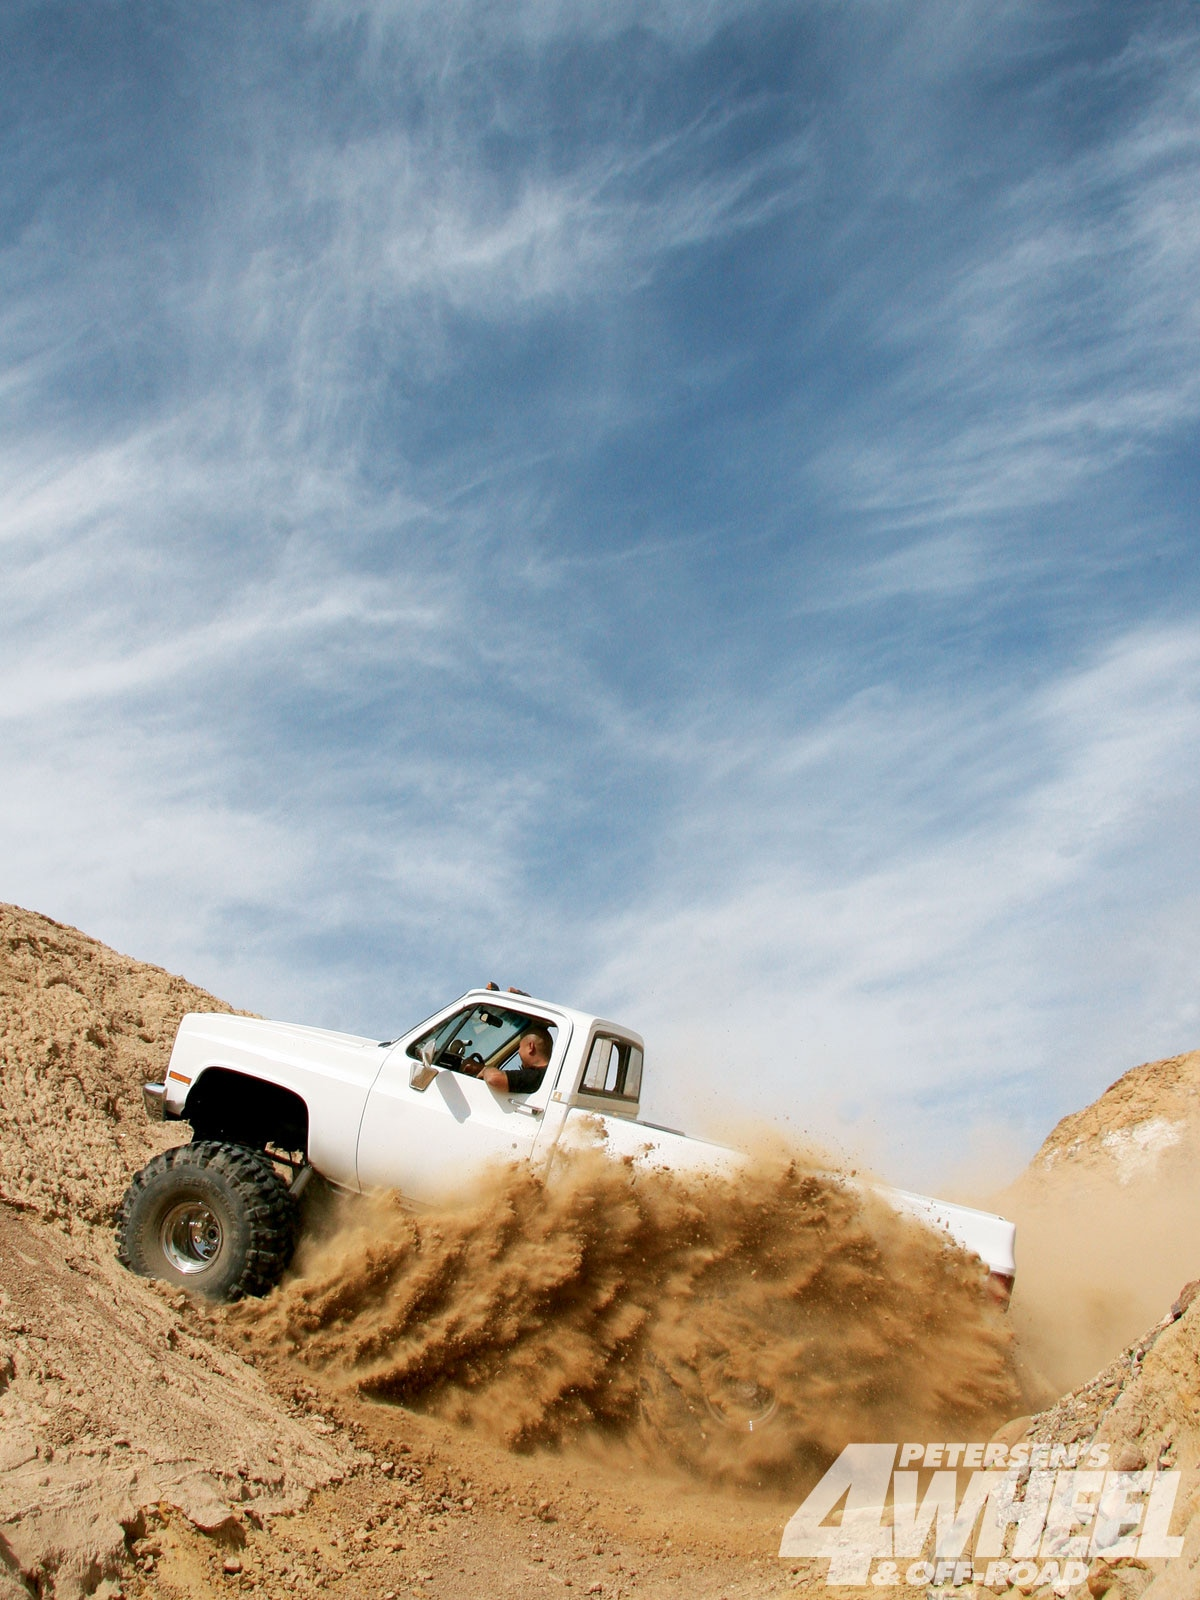 131 1007 05+48th annual desert safari+off road action